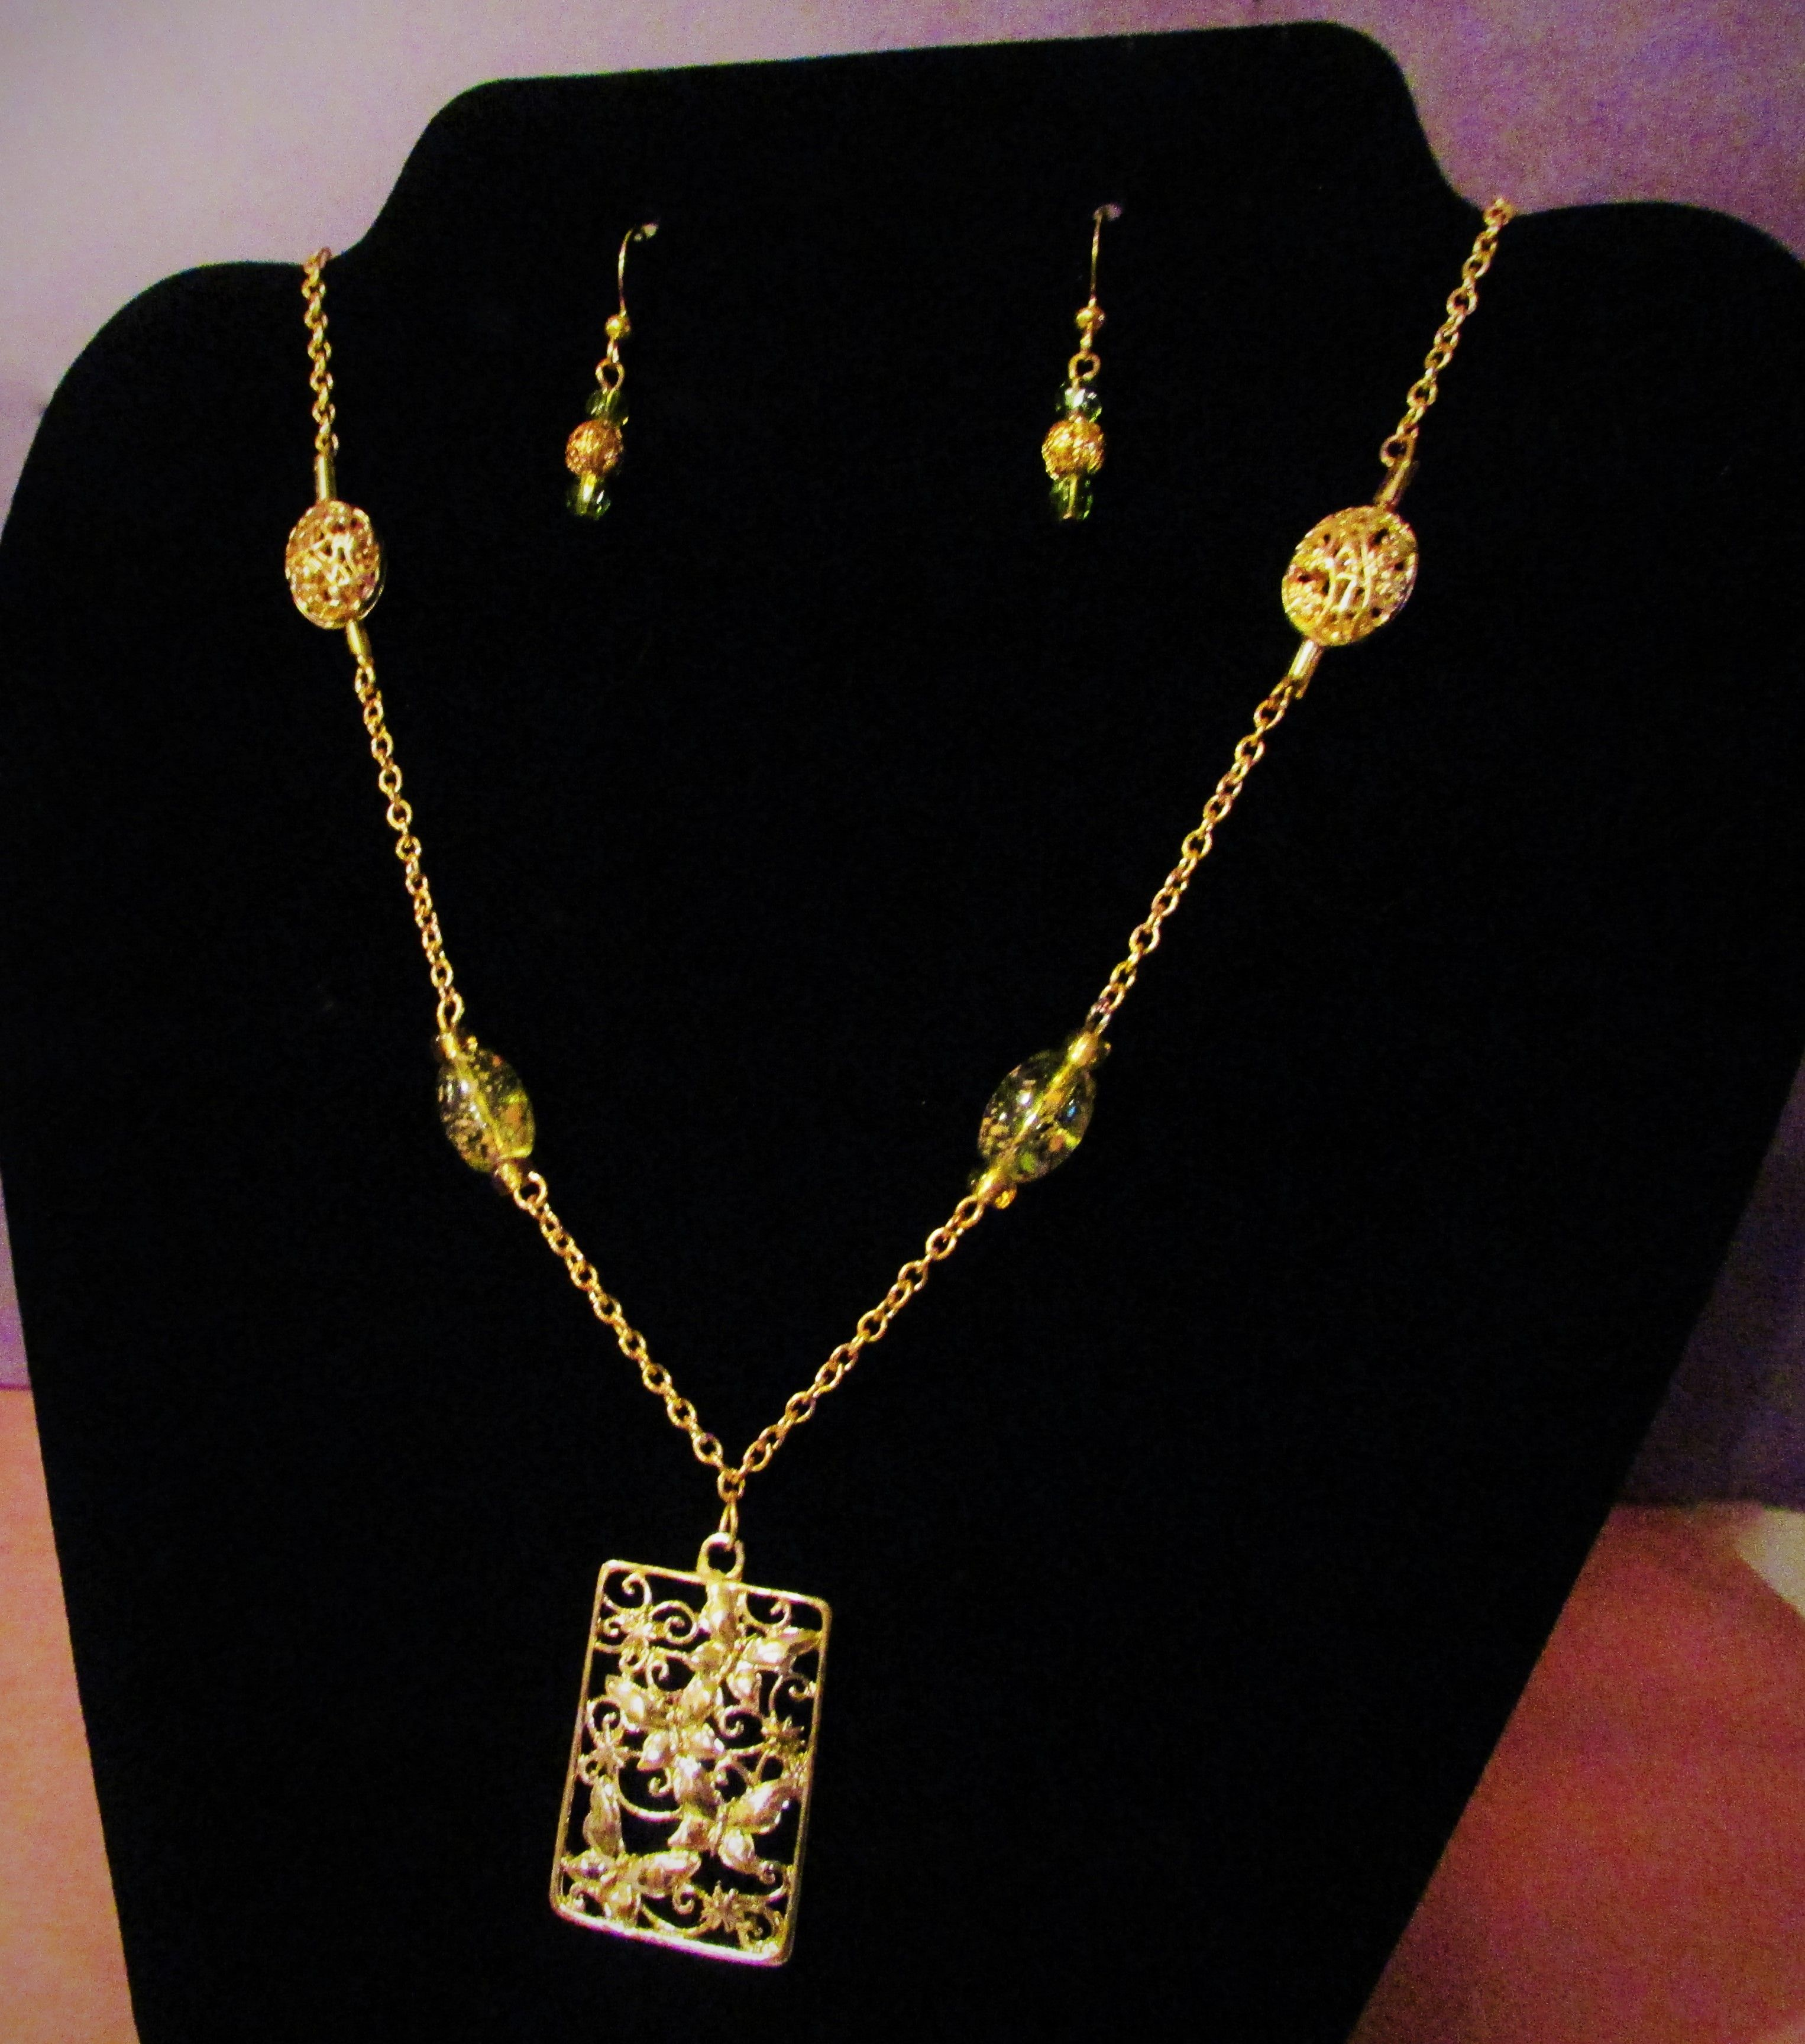 Throw back vintage style necklace u earring set gold chain